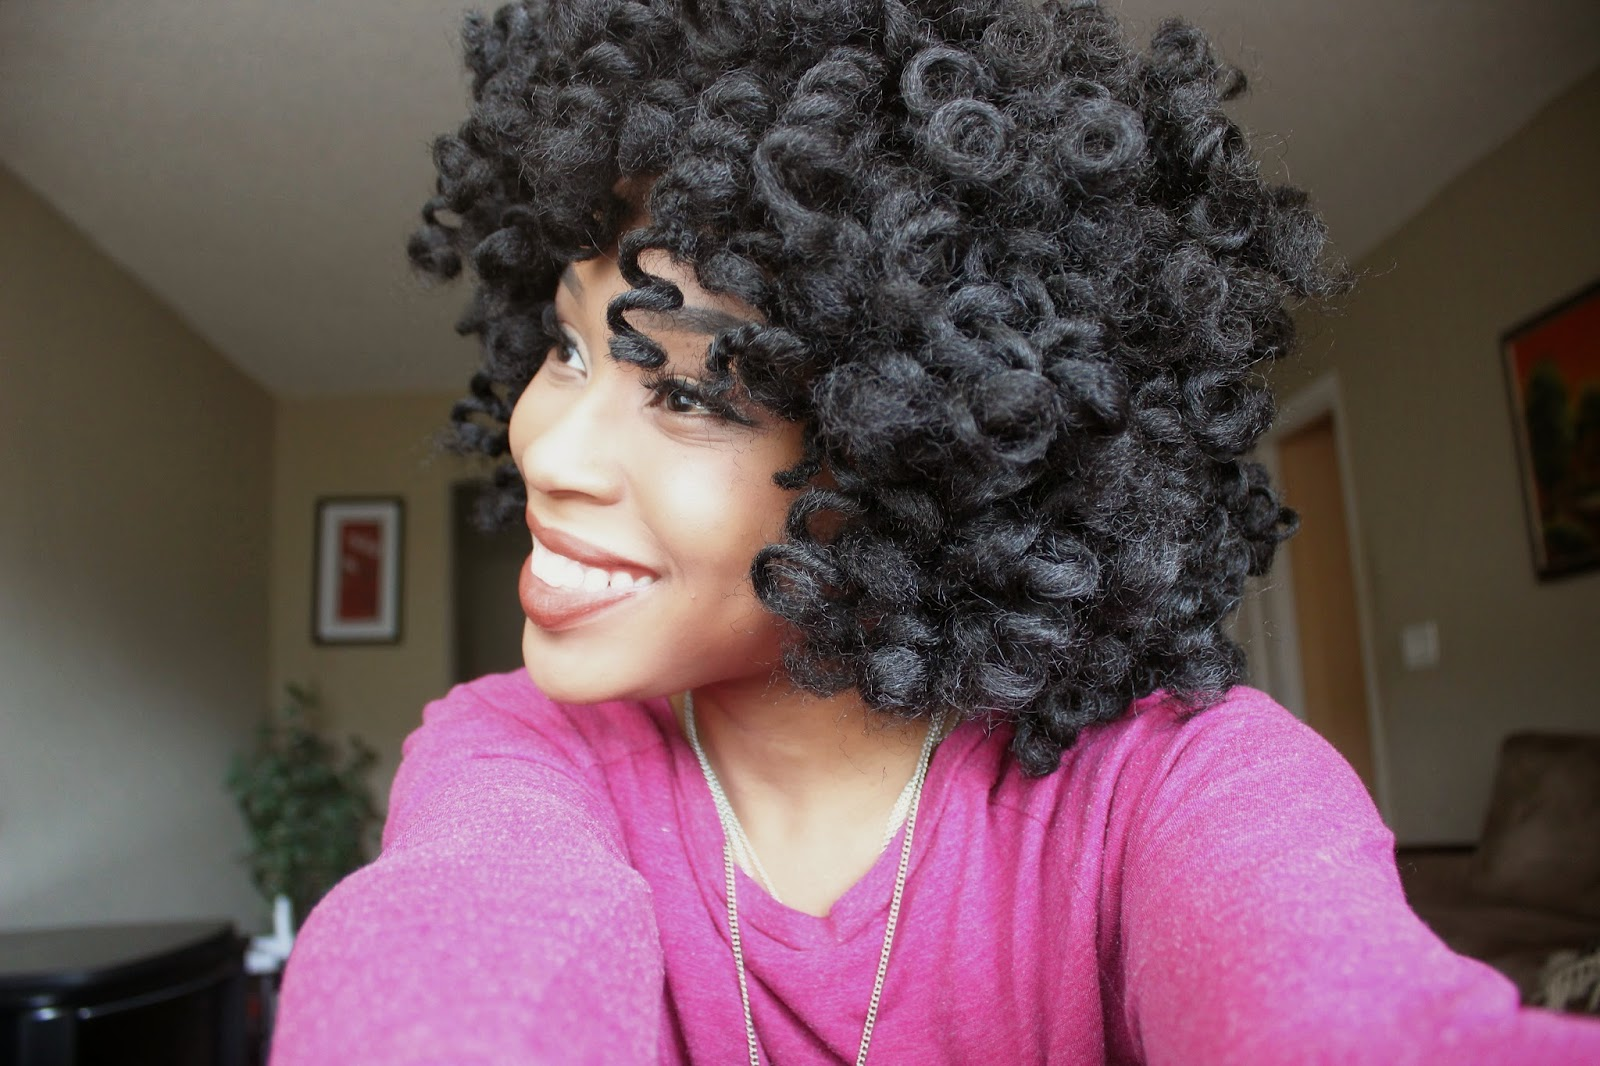 Crochet Braids On A Wig Cap : Once all the hair has been crocheted on the the weaving cap I then ...